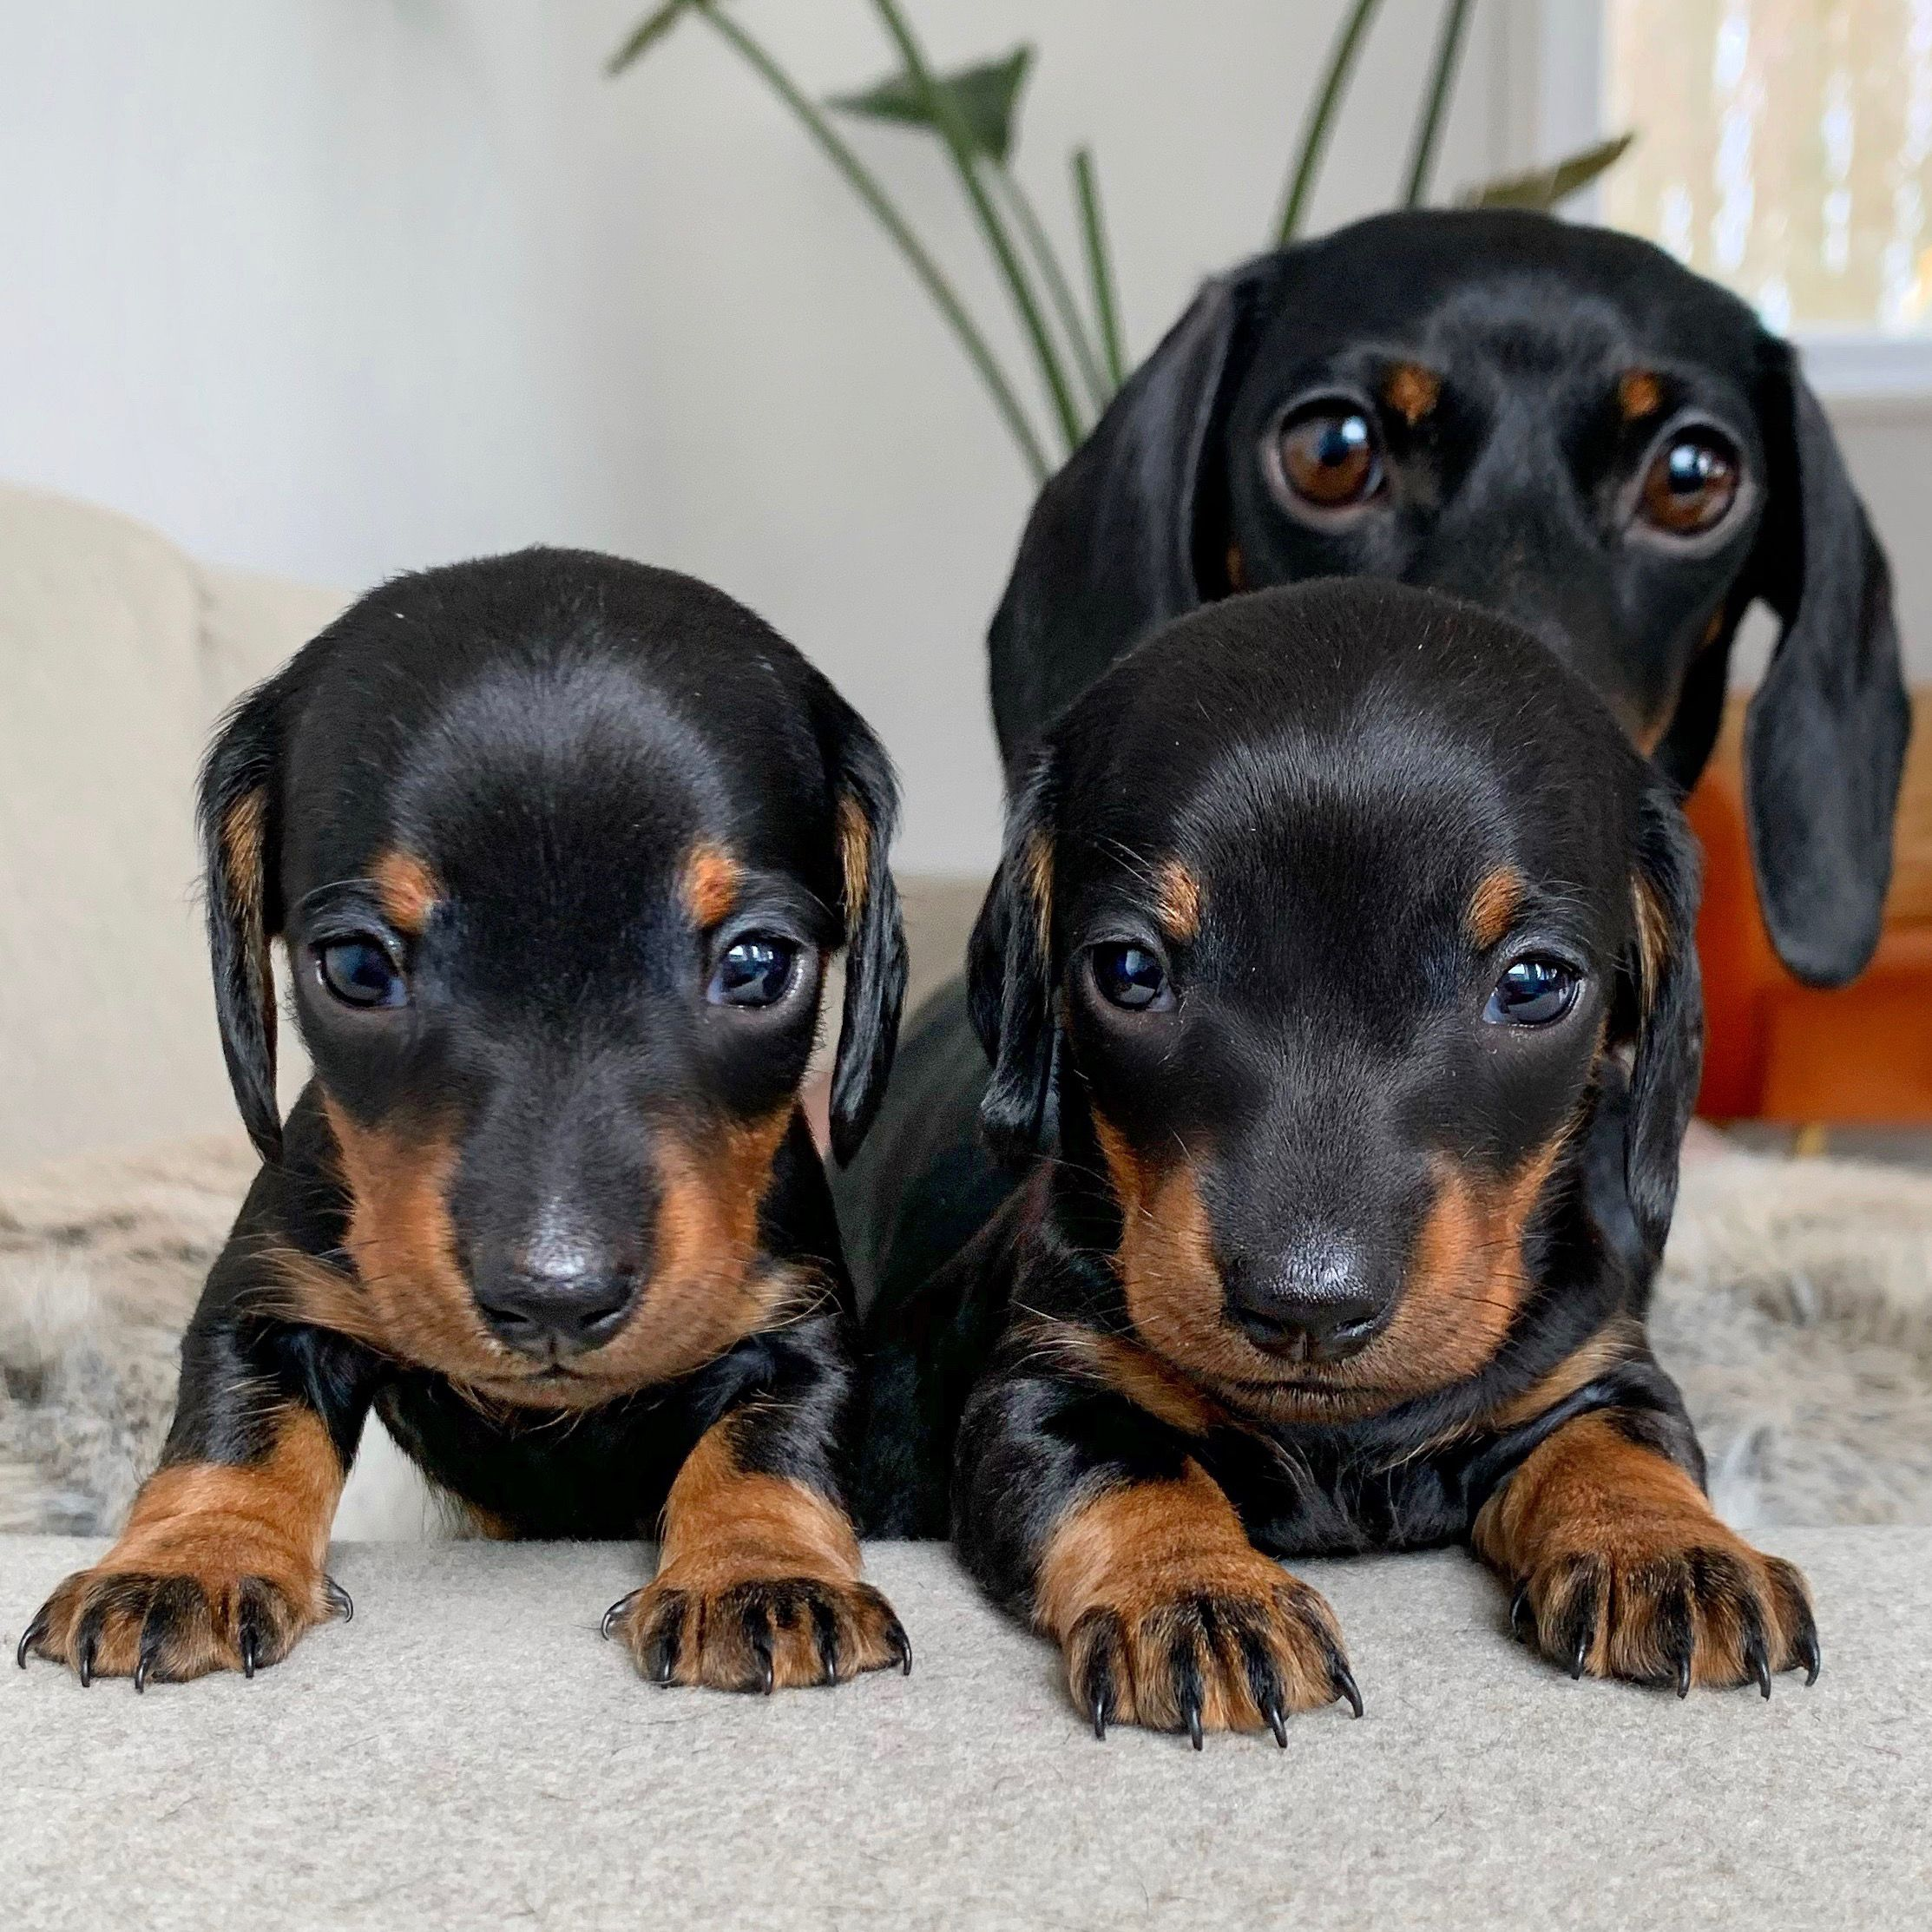 Pin By Becky Gravitt On So So Cute In 2020 Puppies Baby